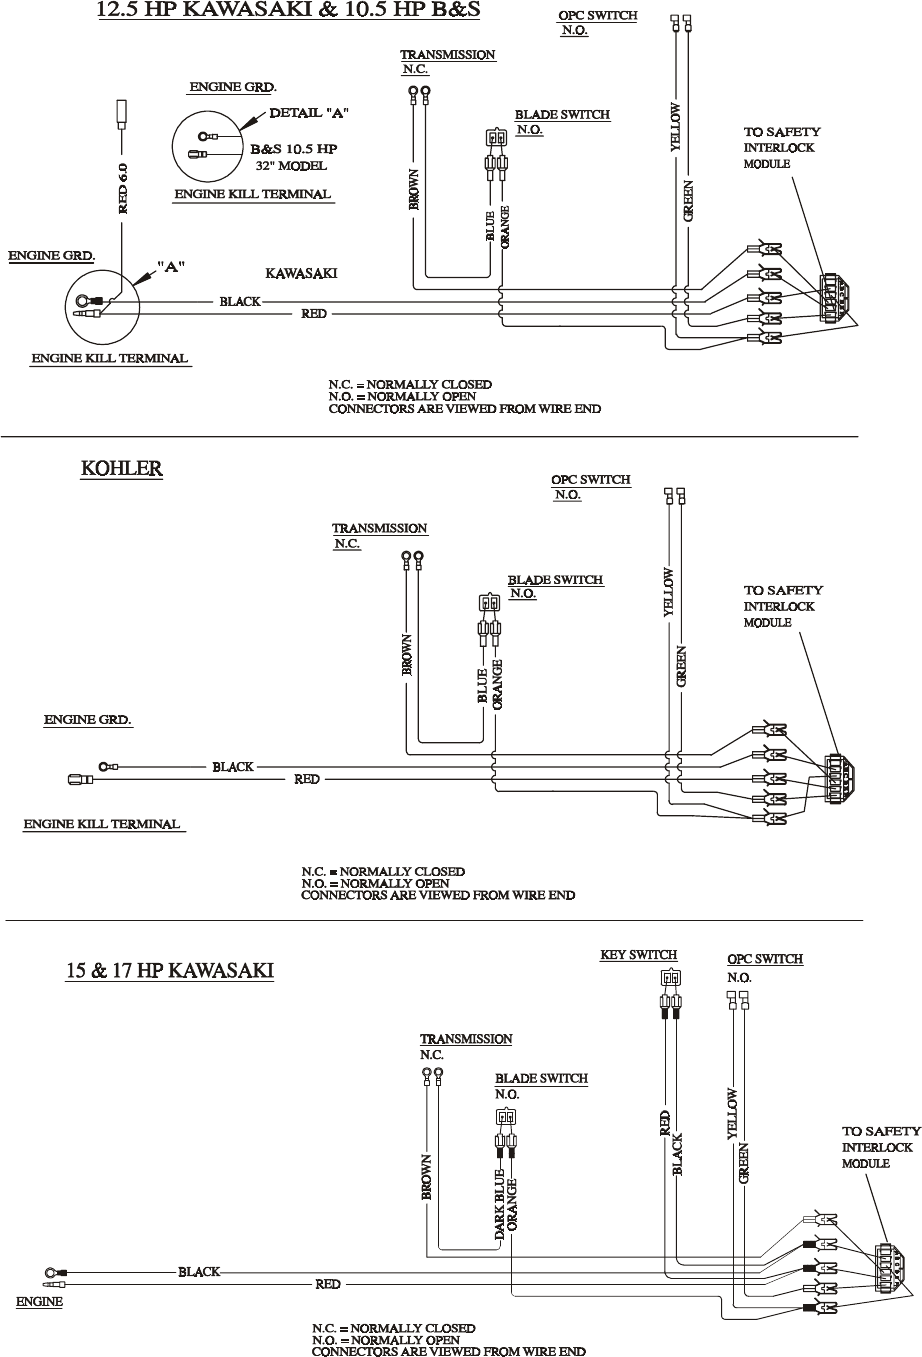 fa869892 6c99 4c24 afcd a612459af1d0 bg27 page 39 of exmark lawn mower metro user guide manualsonline com exmark wiring diagram at honlapkeszites.co